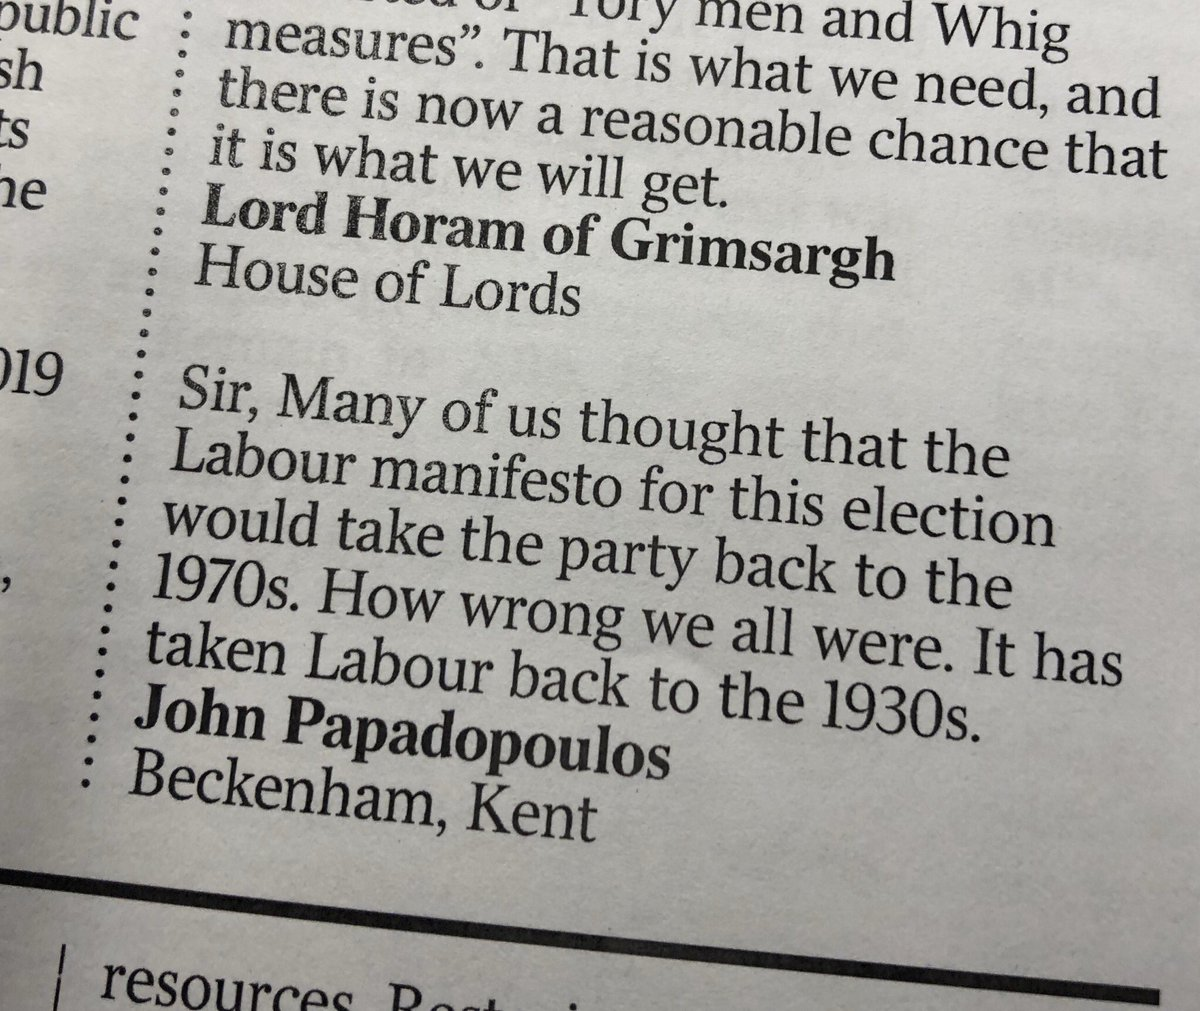 Corbyn failed to take Britain back to the 70s but he took @UKLabour back to the 1930s. Via @timesletters #GE2019pic.twitter.com/MkzaEBi8W1